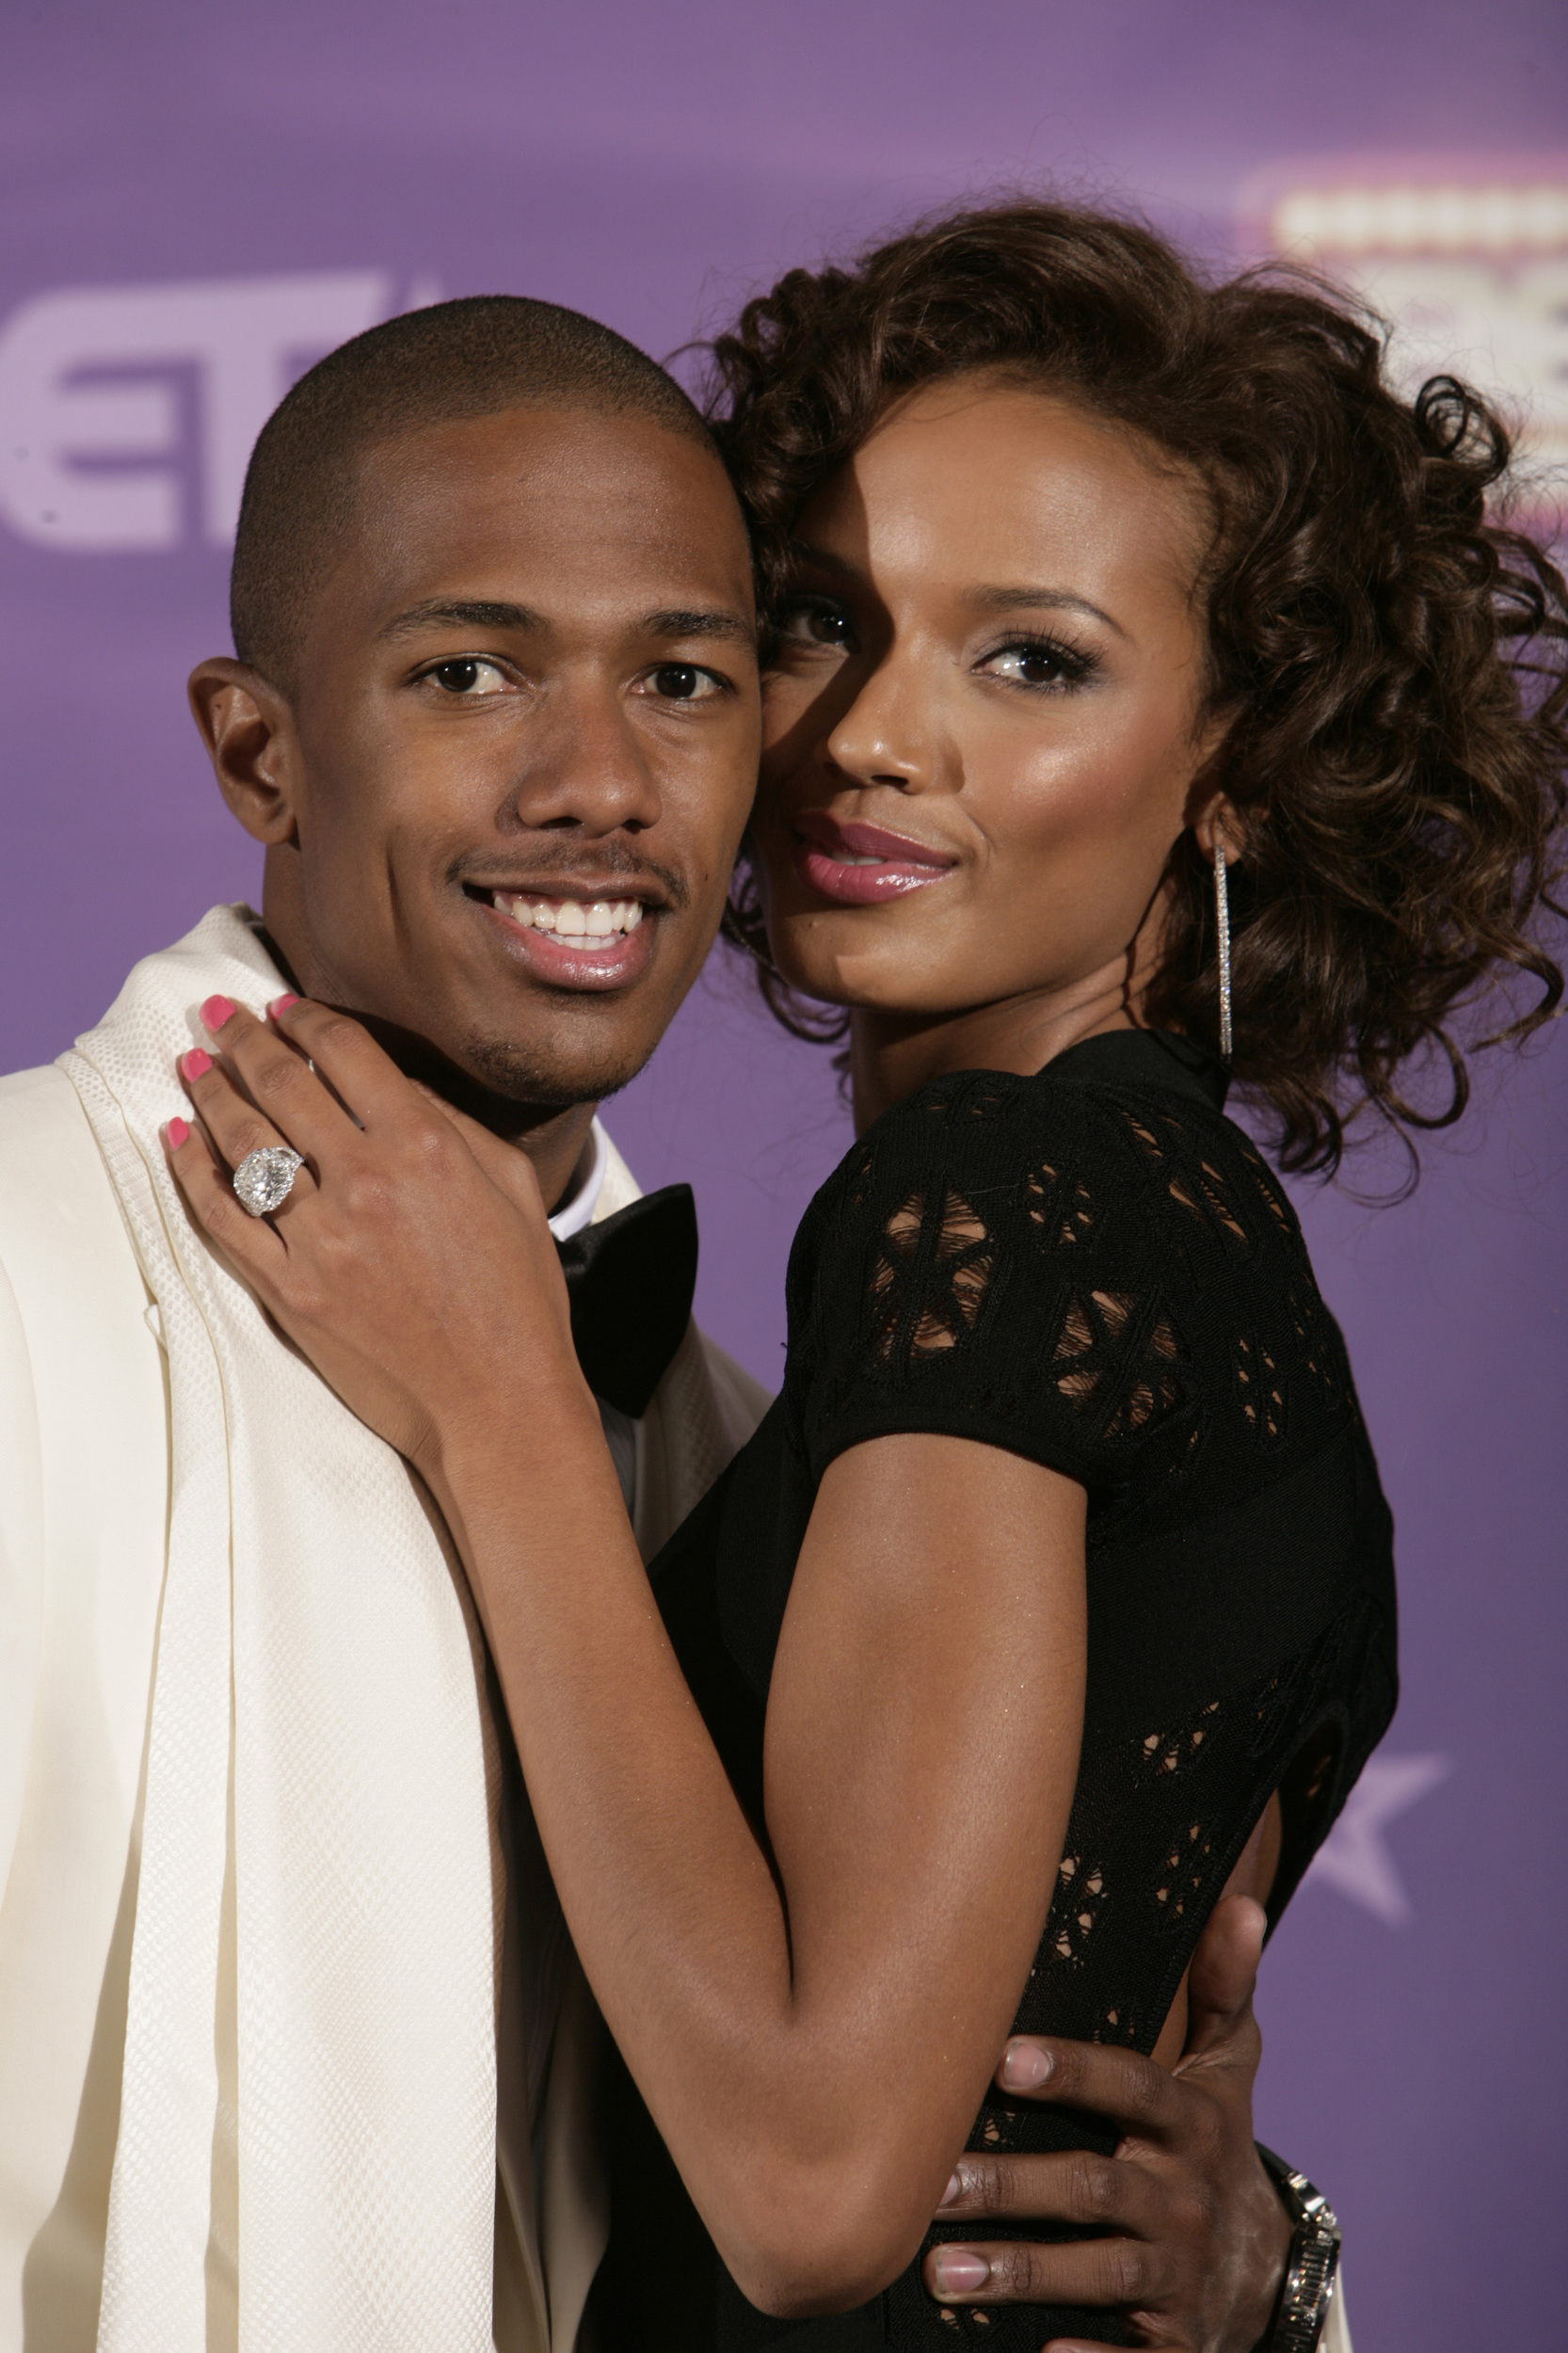 Celebs who have called off their engagements - AOL.com